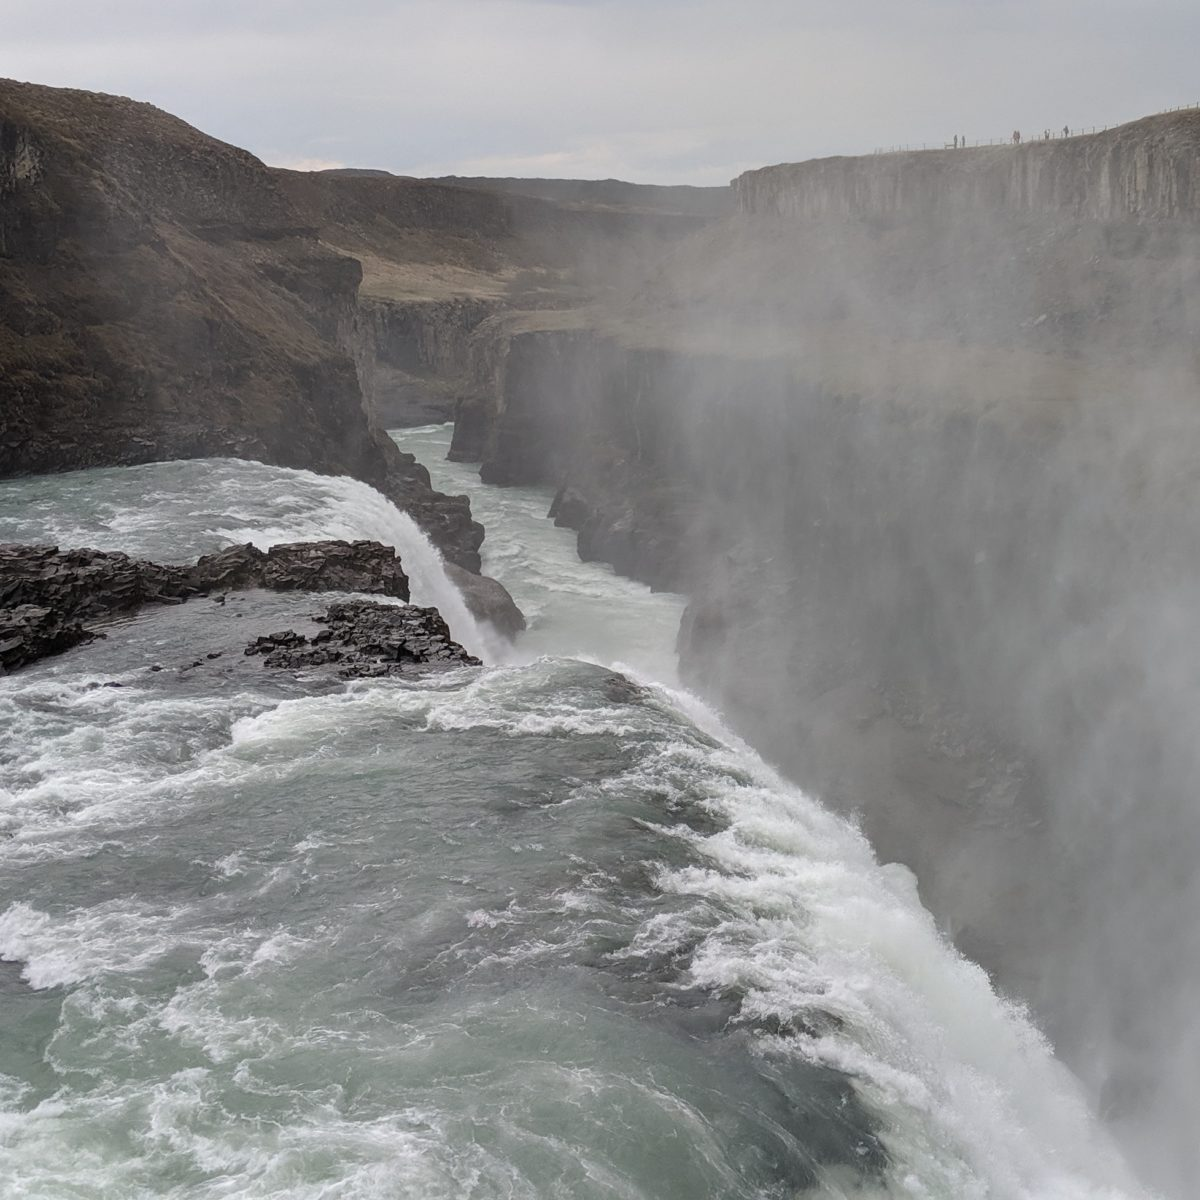 gullfoss and downstream